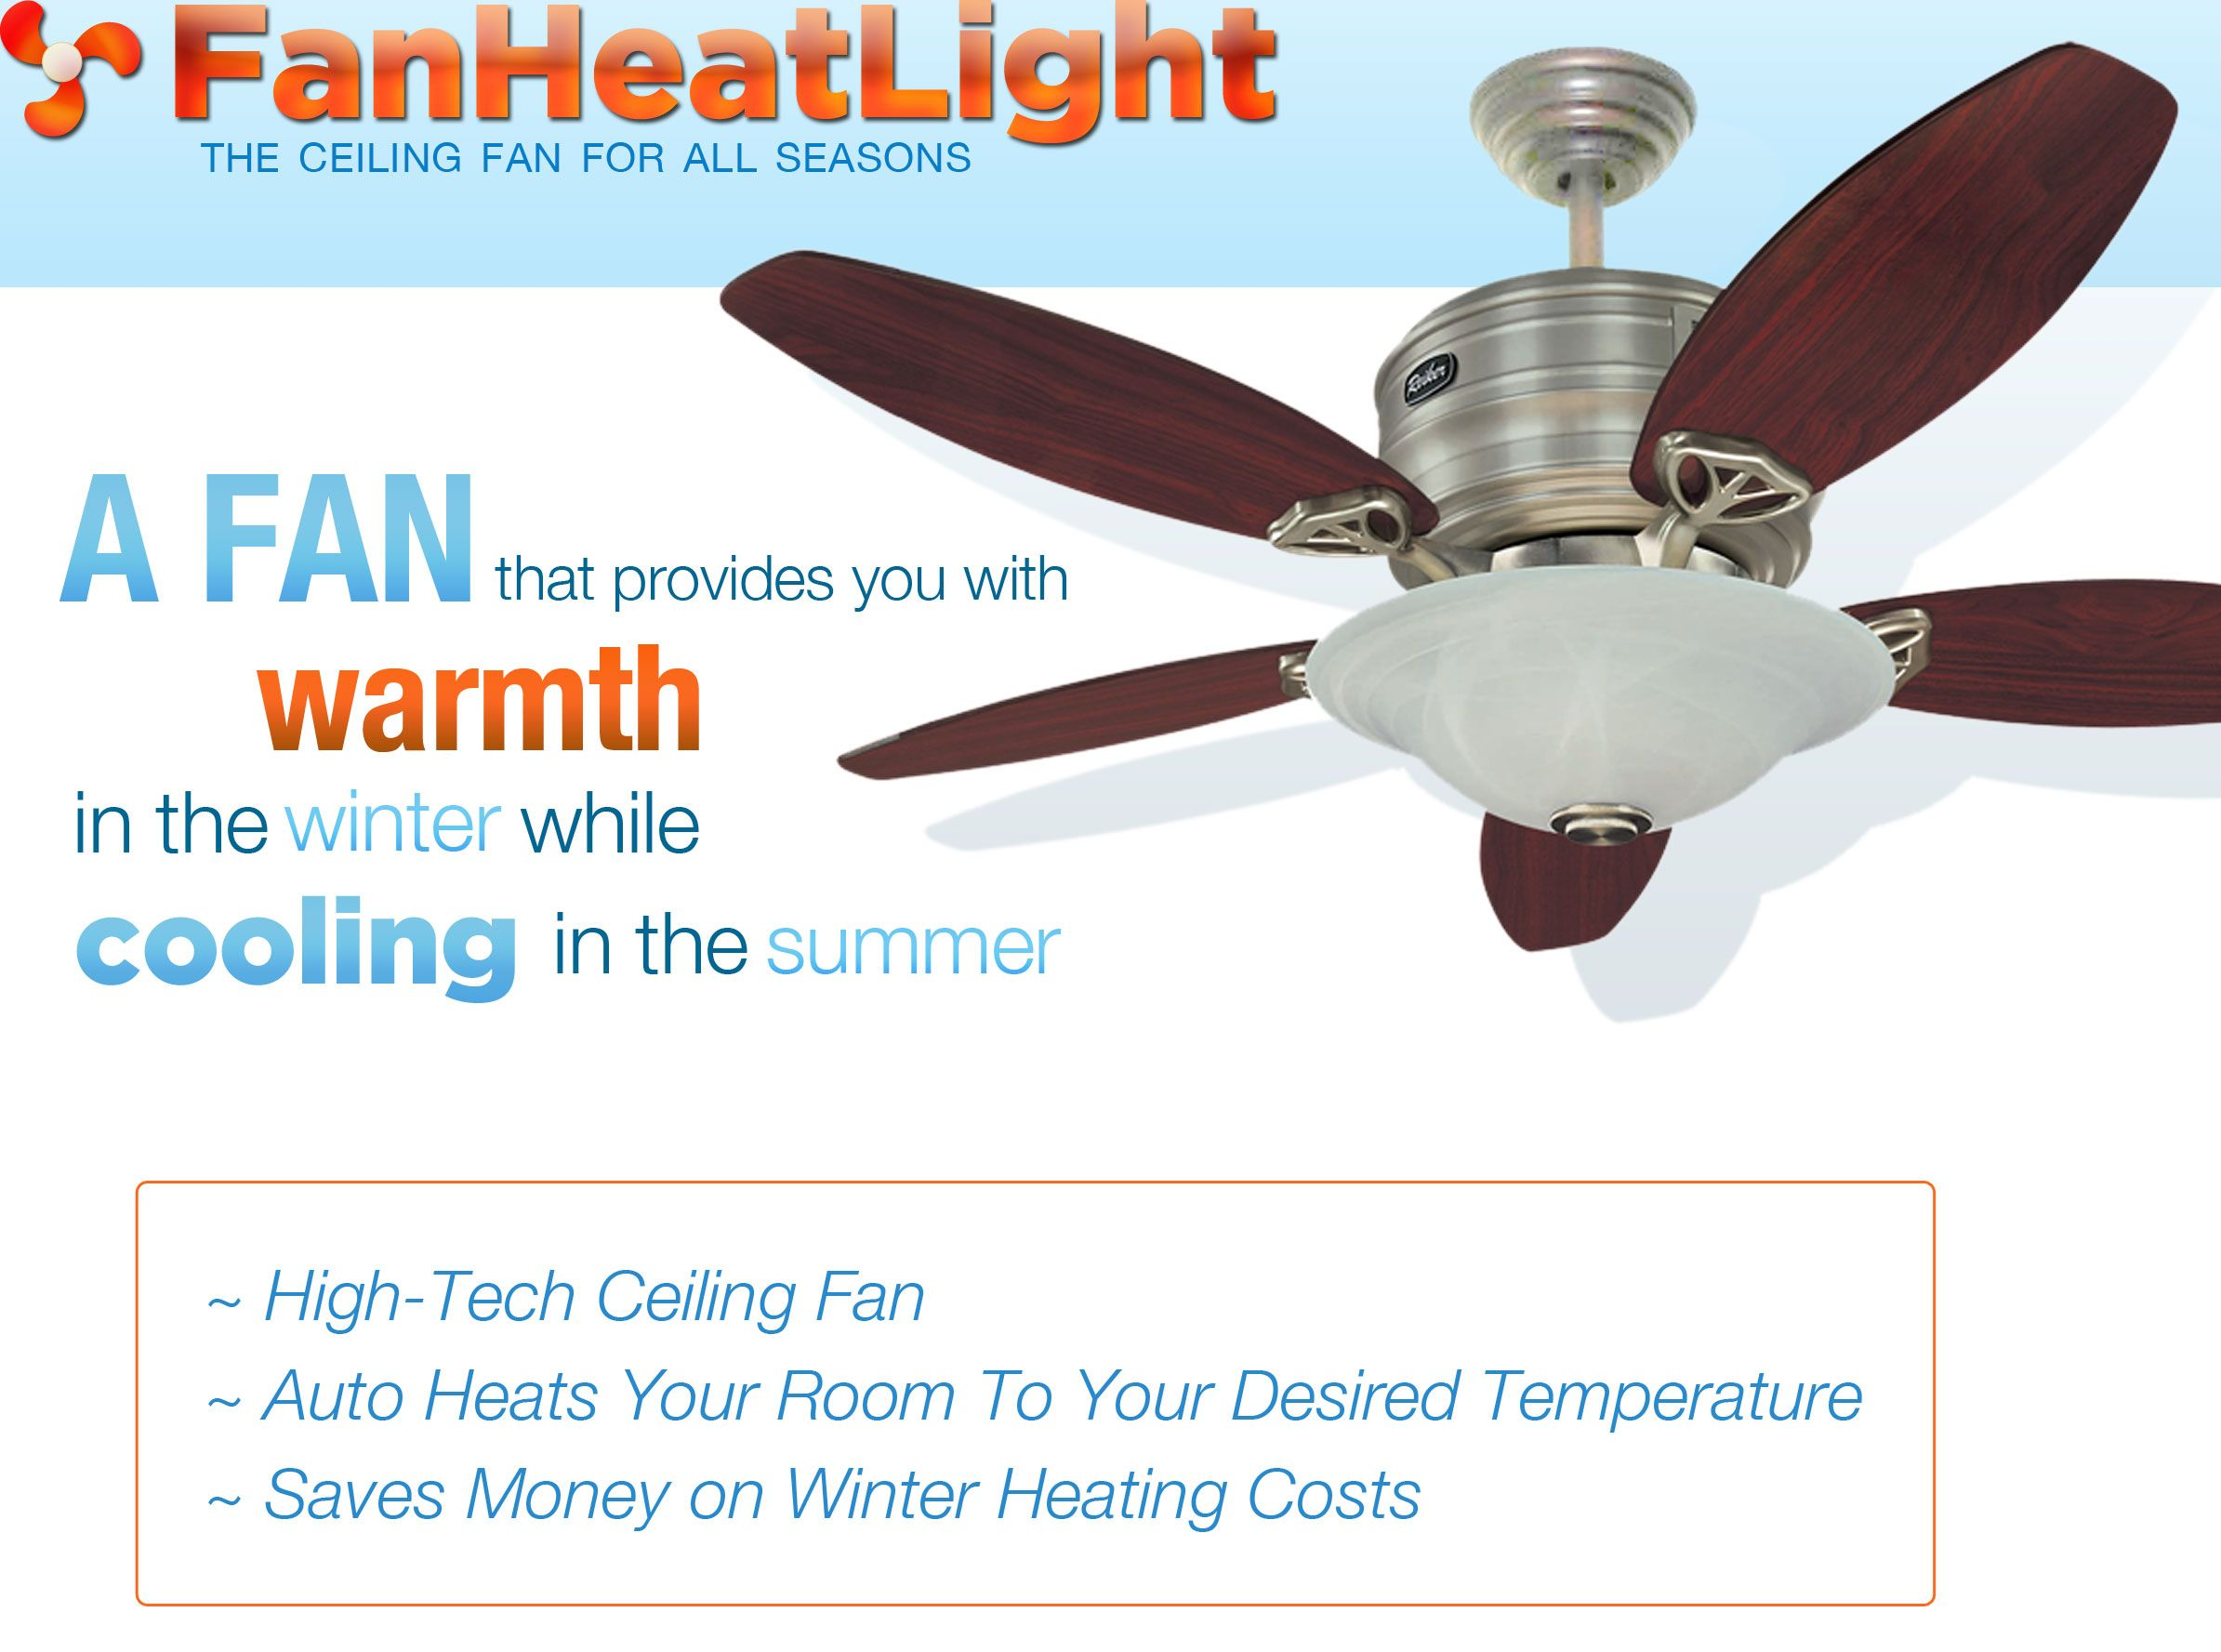 An efficient ceiling fan with a heater keep cold rooms in your home official home of the reiker room conditioner ceiling fan heater heats during the winter and cools during the summer the ceiling fan for all seasons aloadofball Images